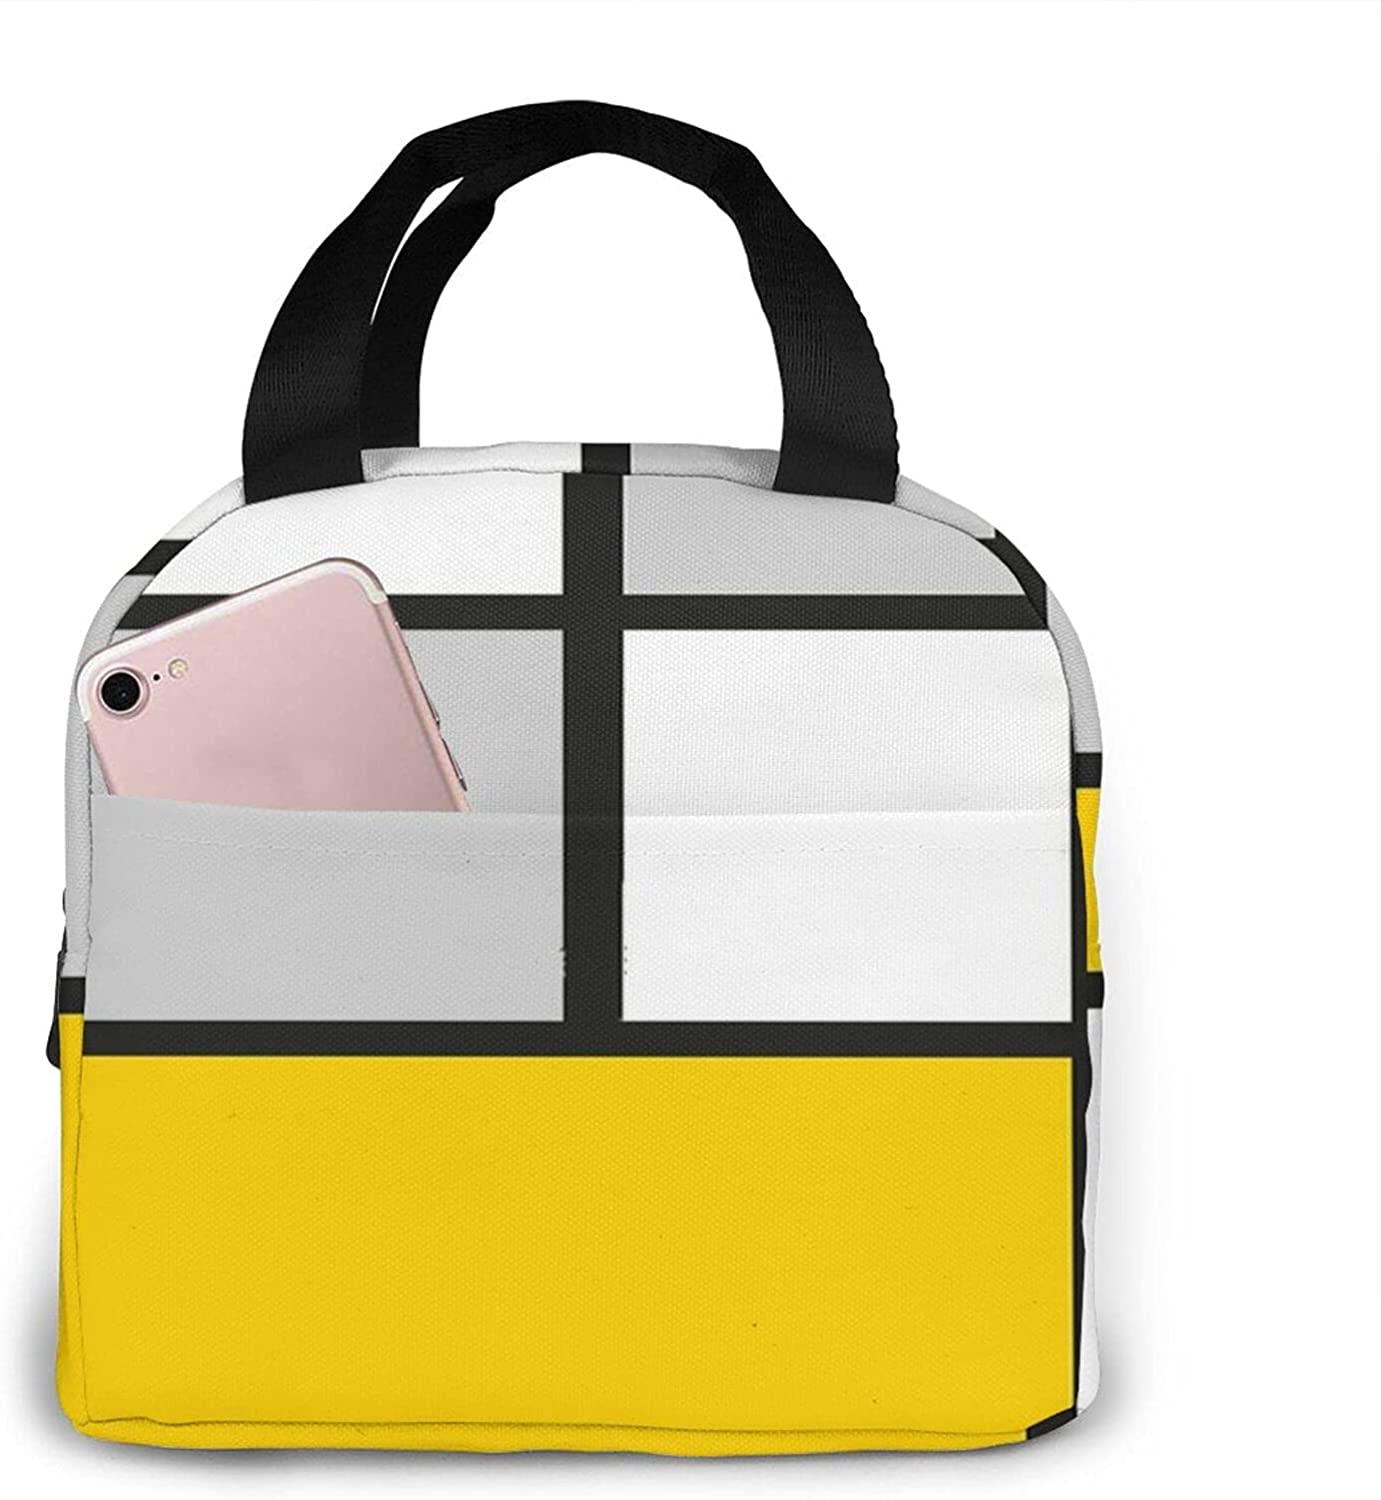 Fashionable Abstract#8 Lunch Box For Women Cheap mail order shopping Insulated Reusable Portable Large